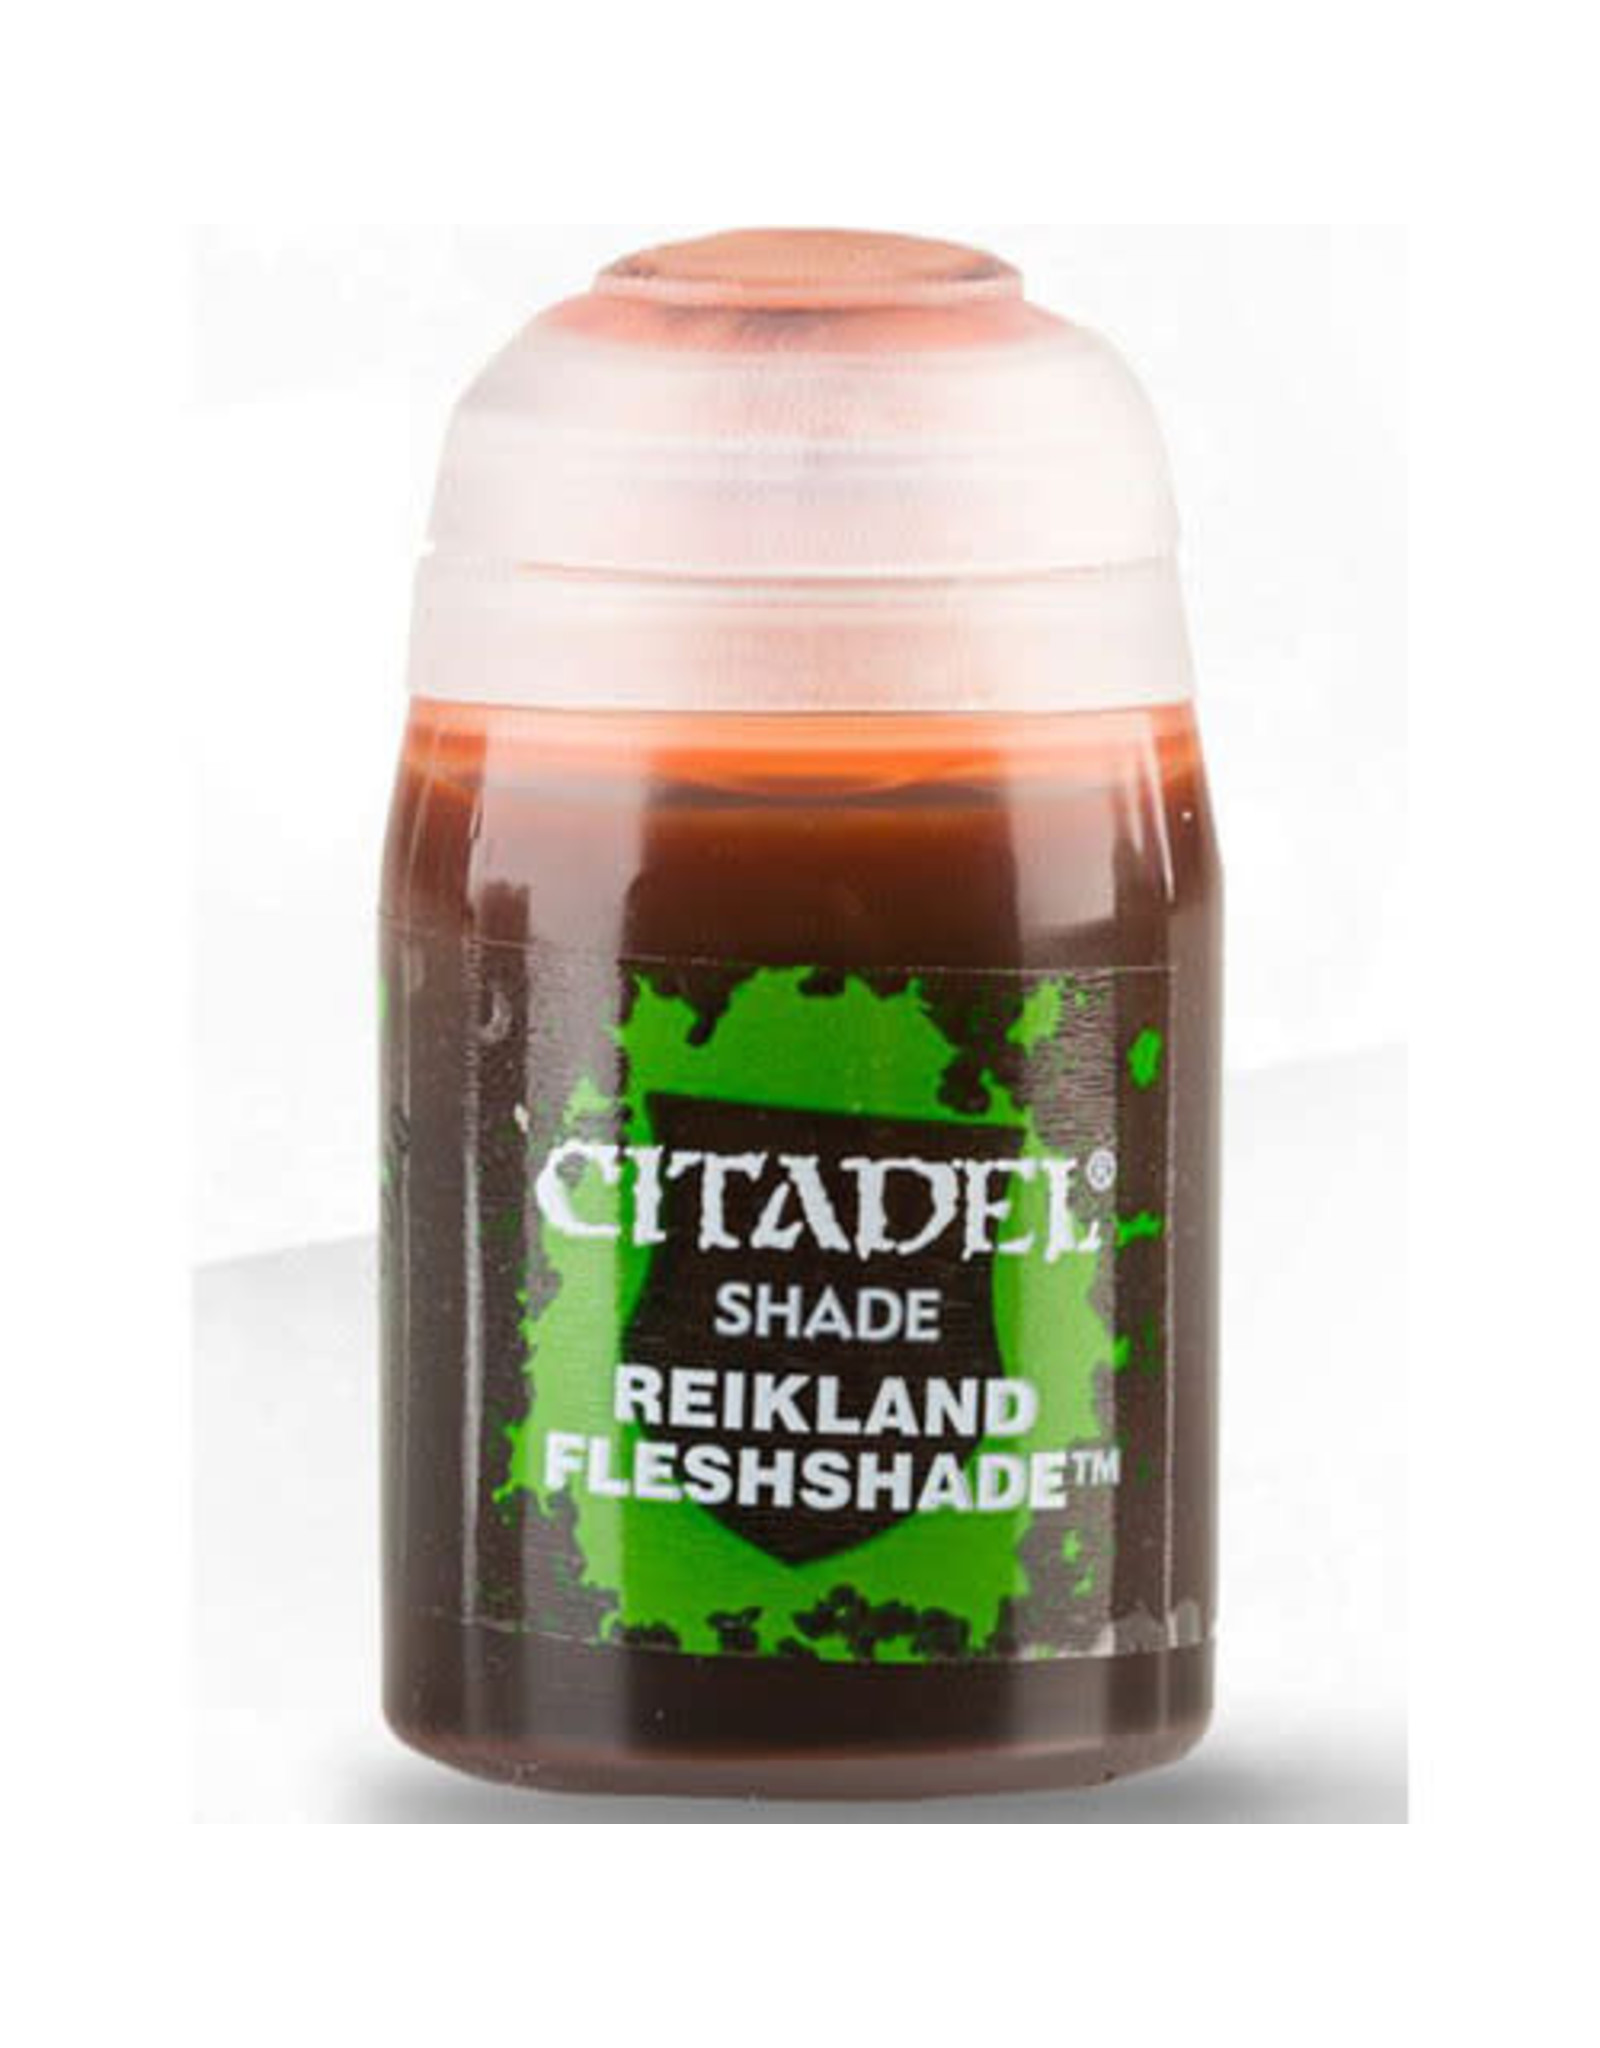 Games Workshop Citadel Paint: Reikland Fleshshade 24ml